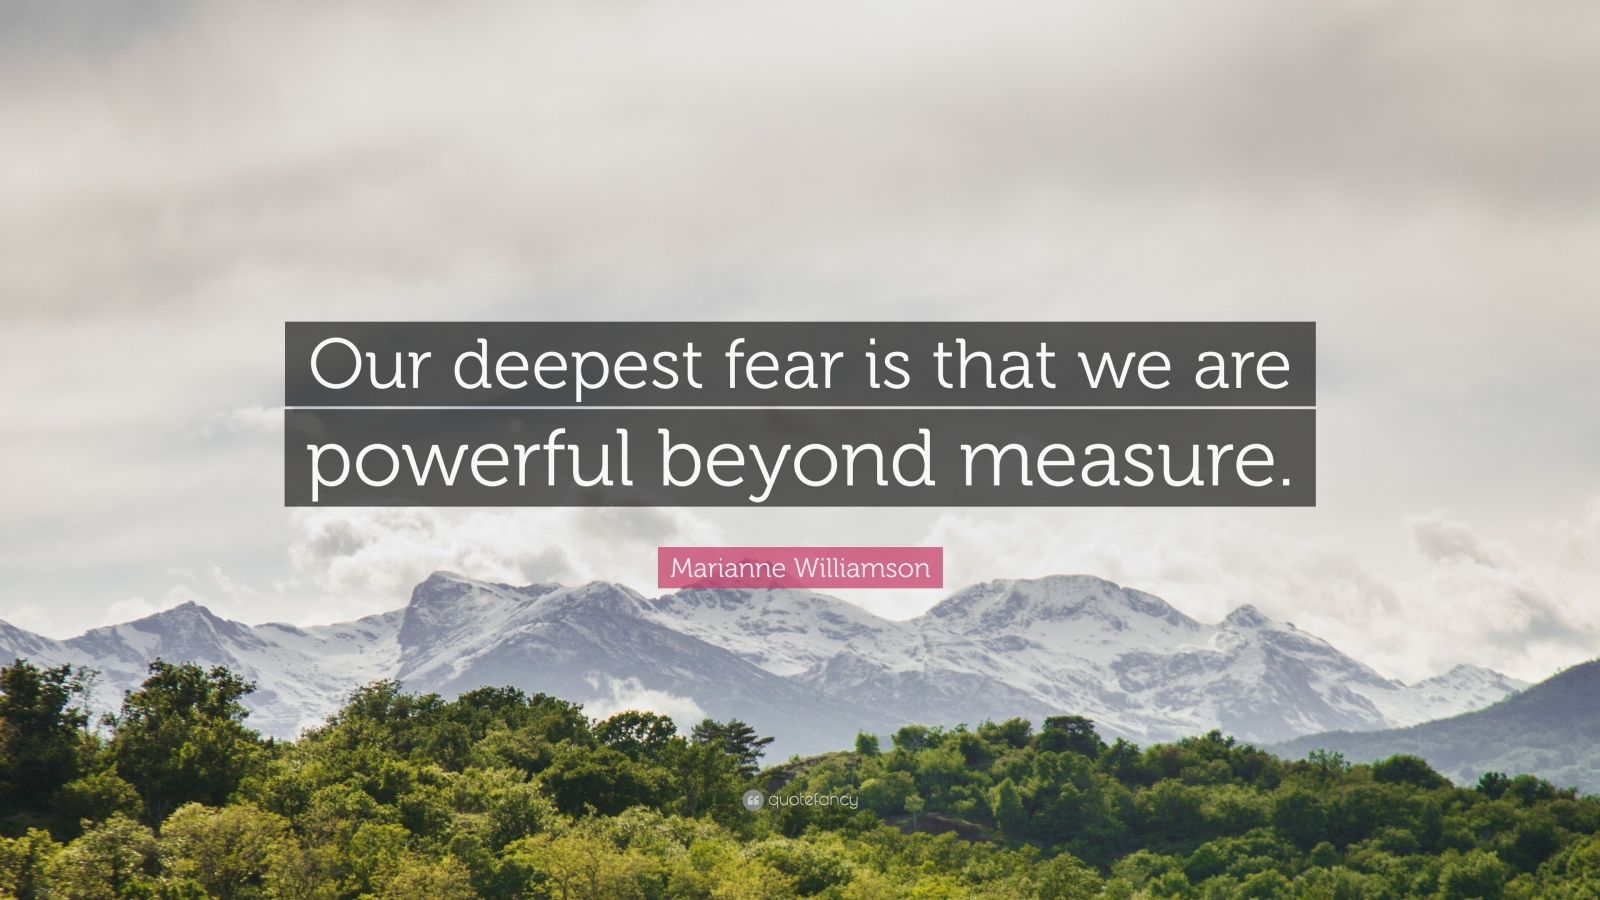 Marianne Williamson Quote Our Deepest Fear Is That We Are Powerful Beyond Measure